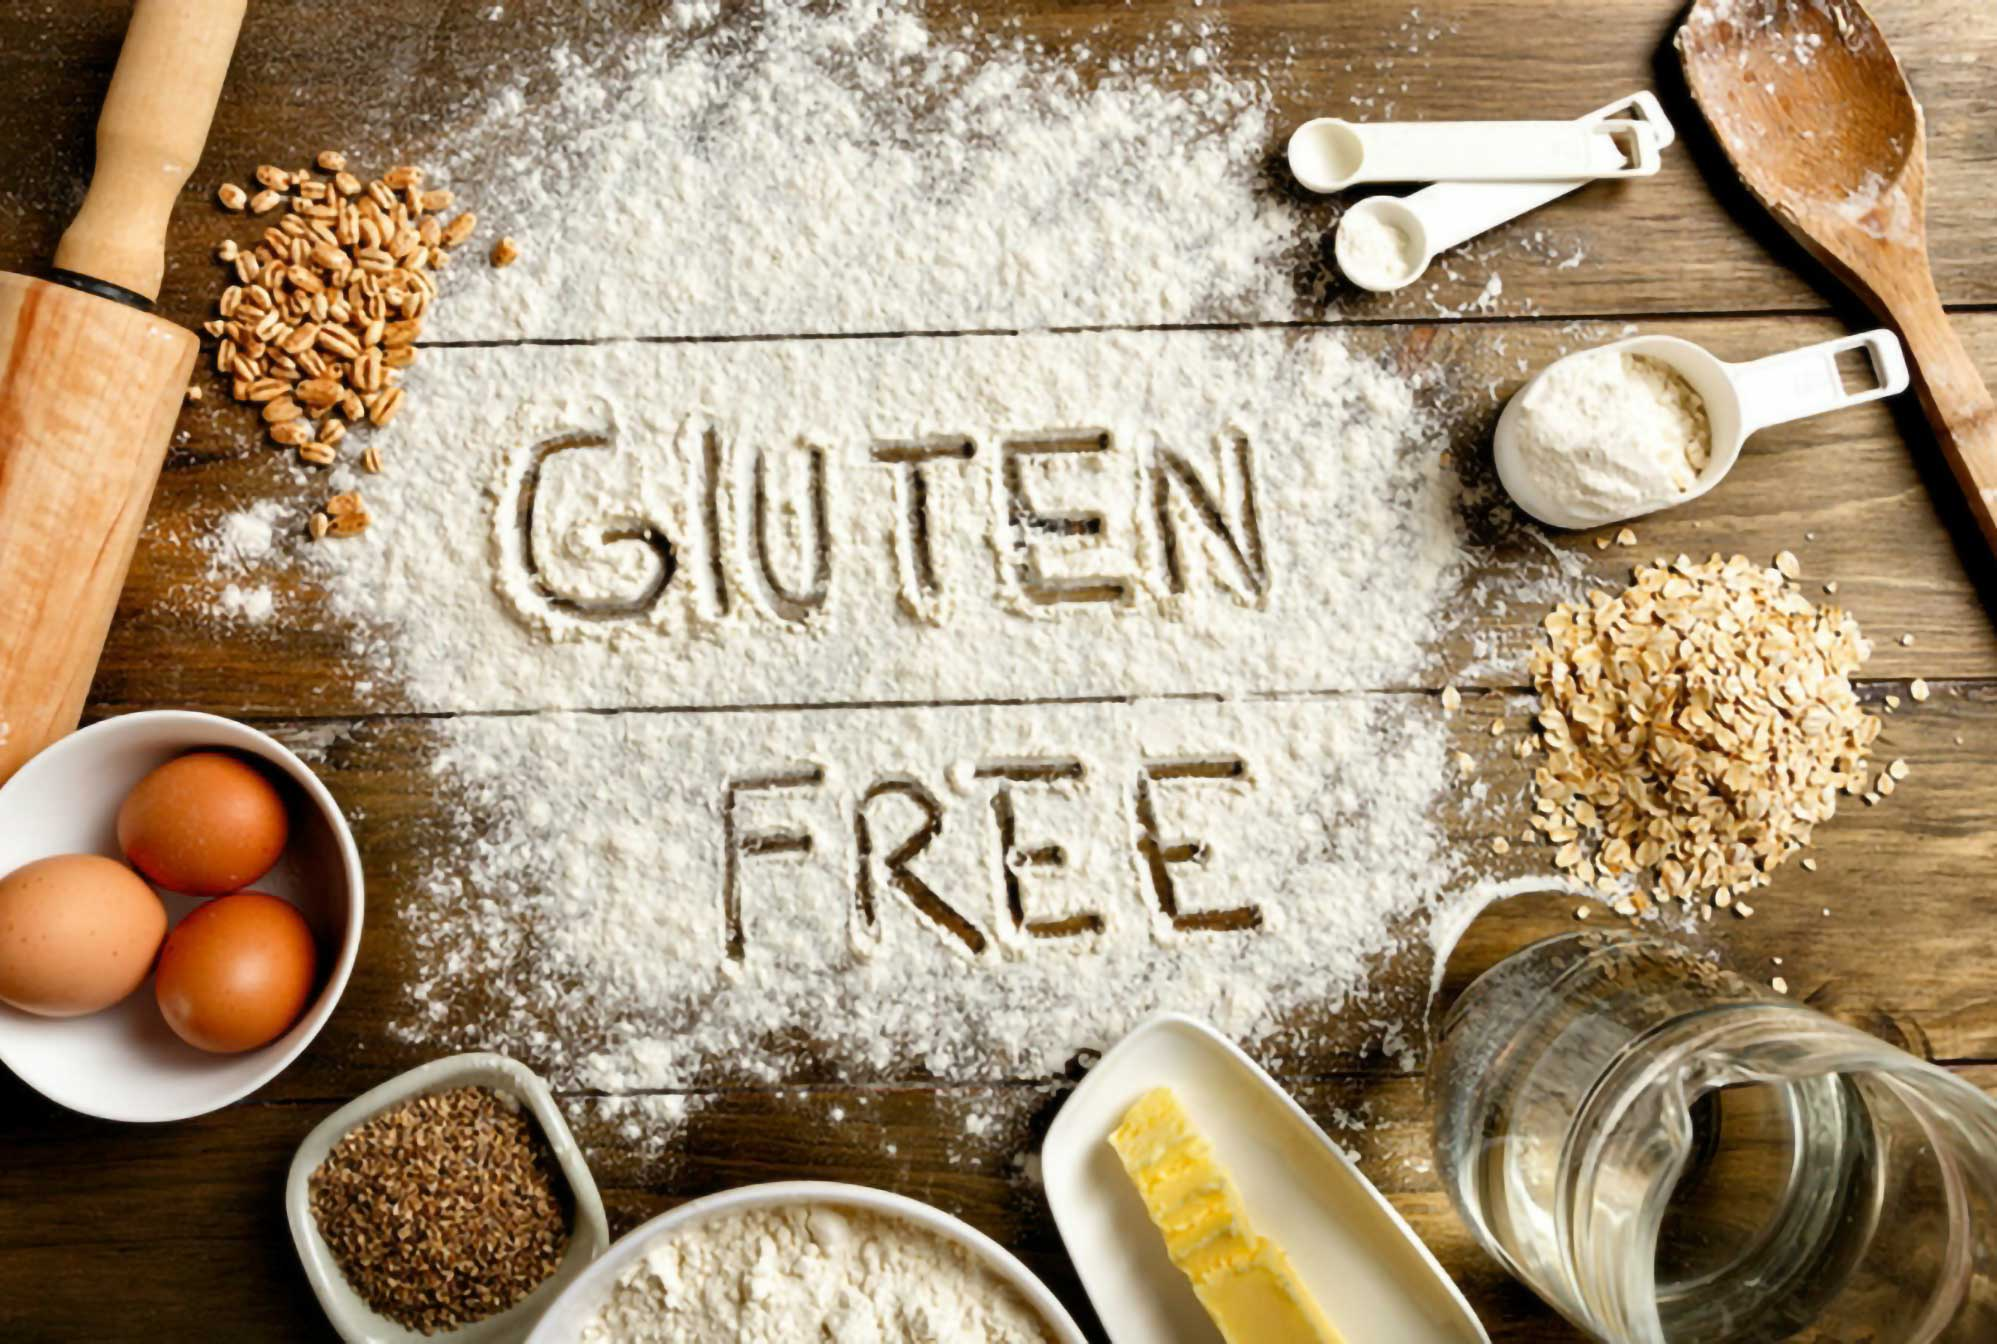 Gluten is not welcome